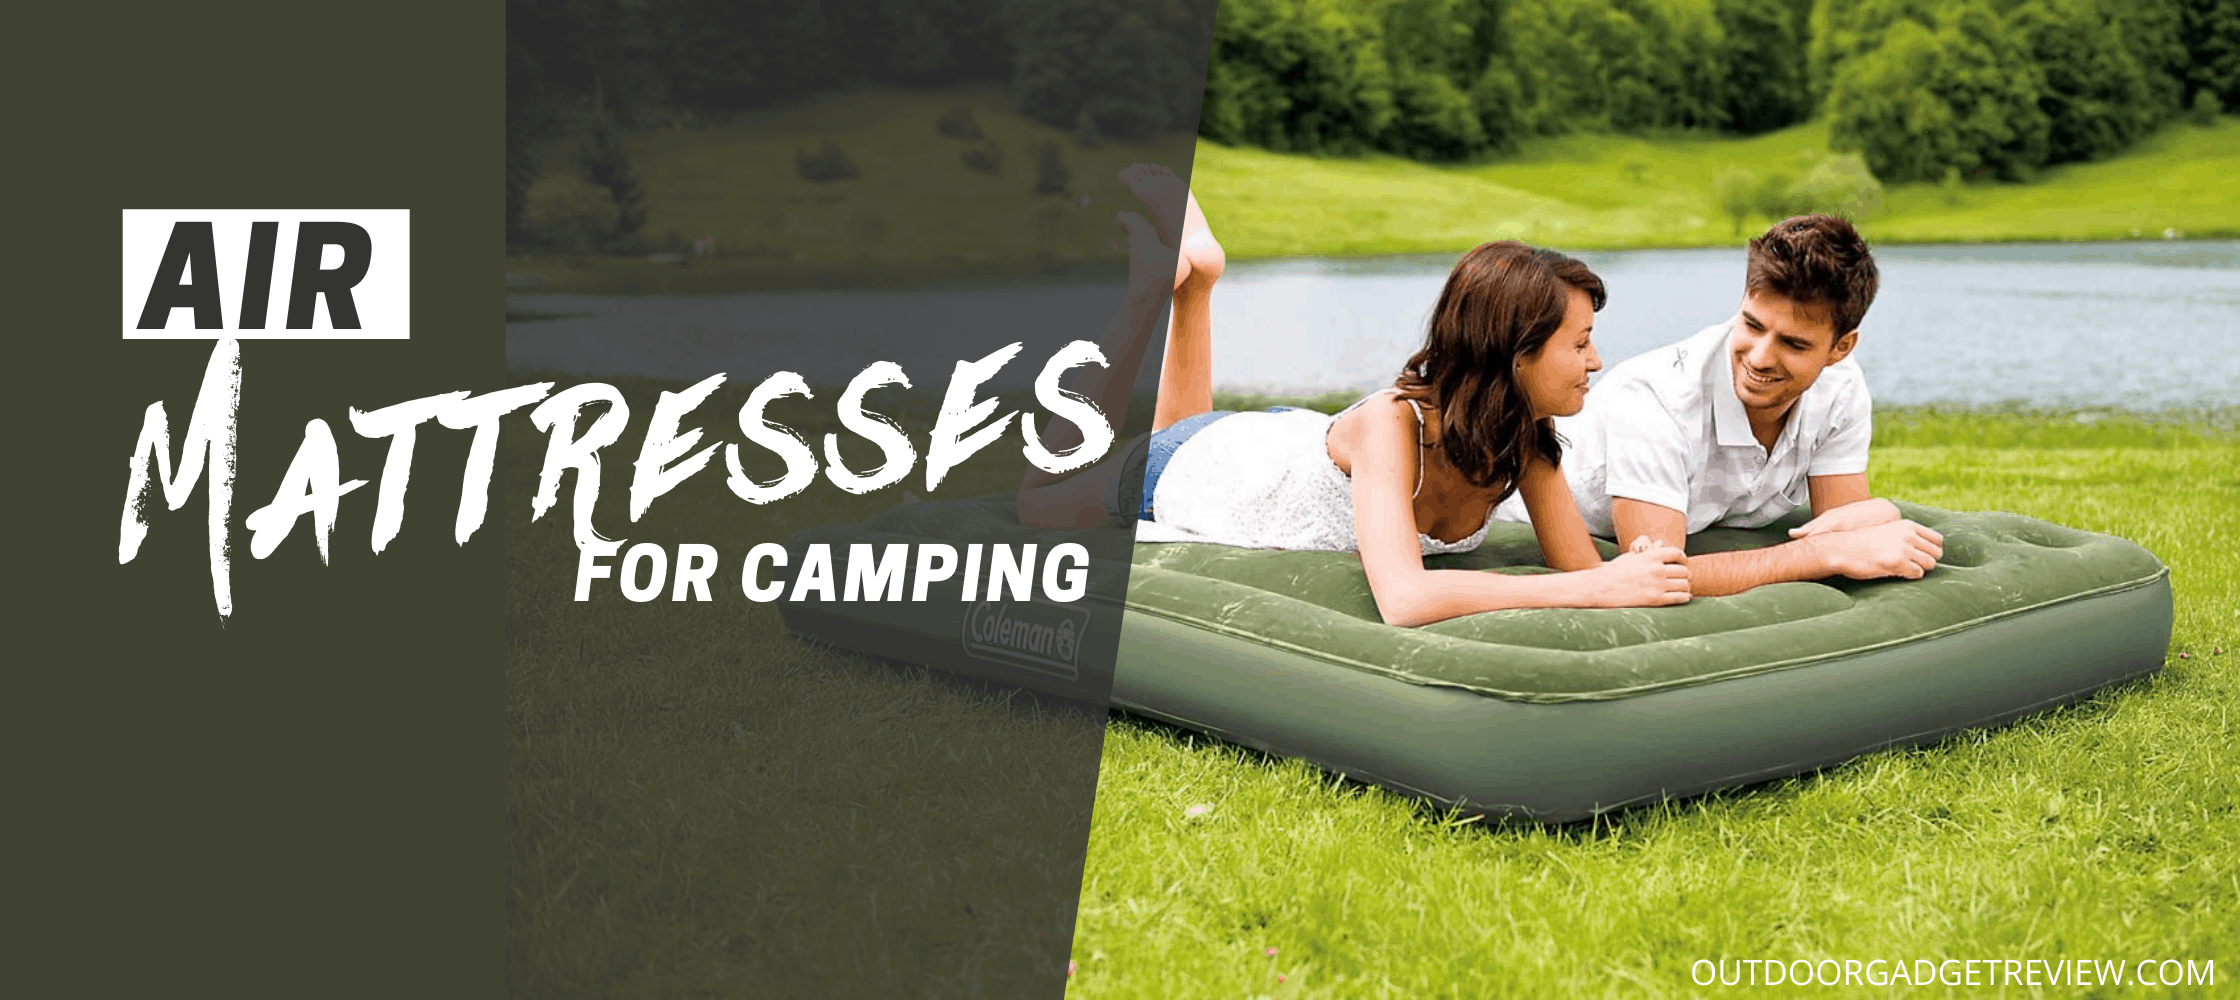 Air Mattresses for Camping